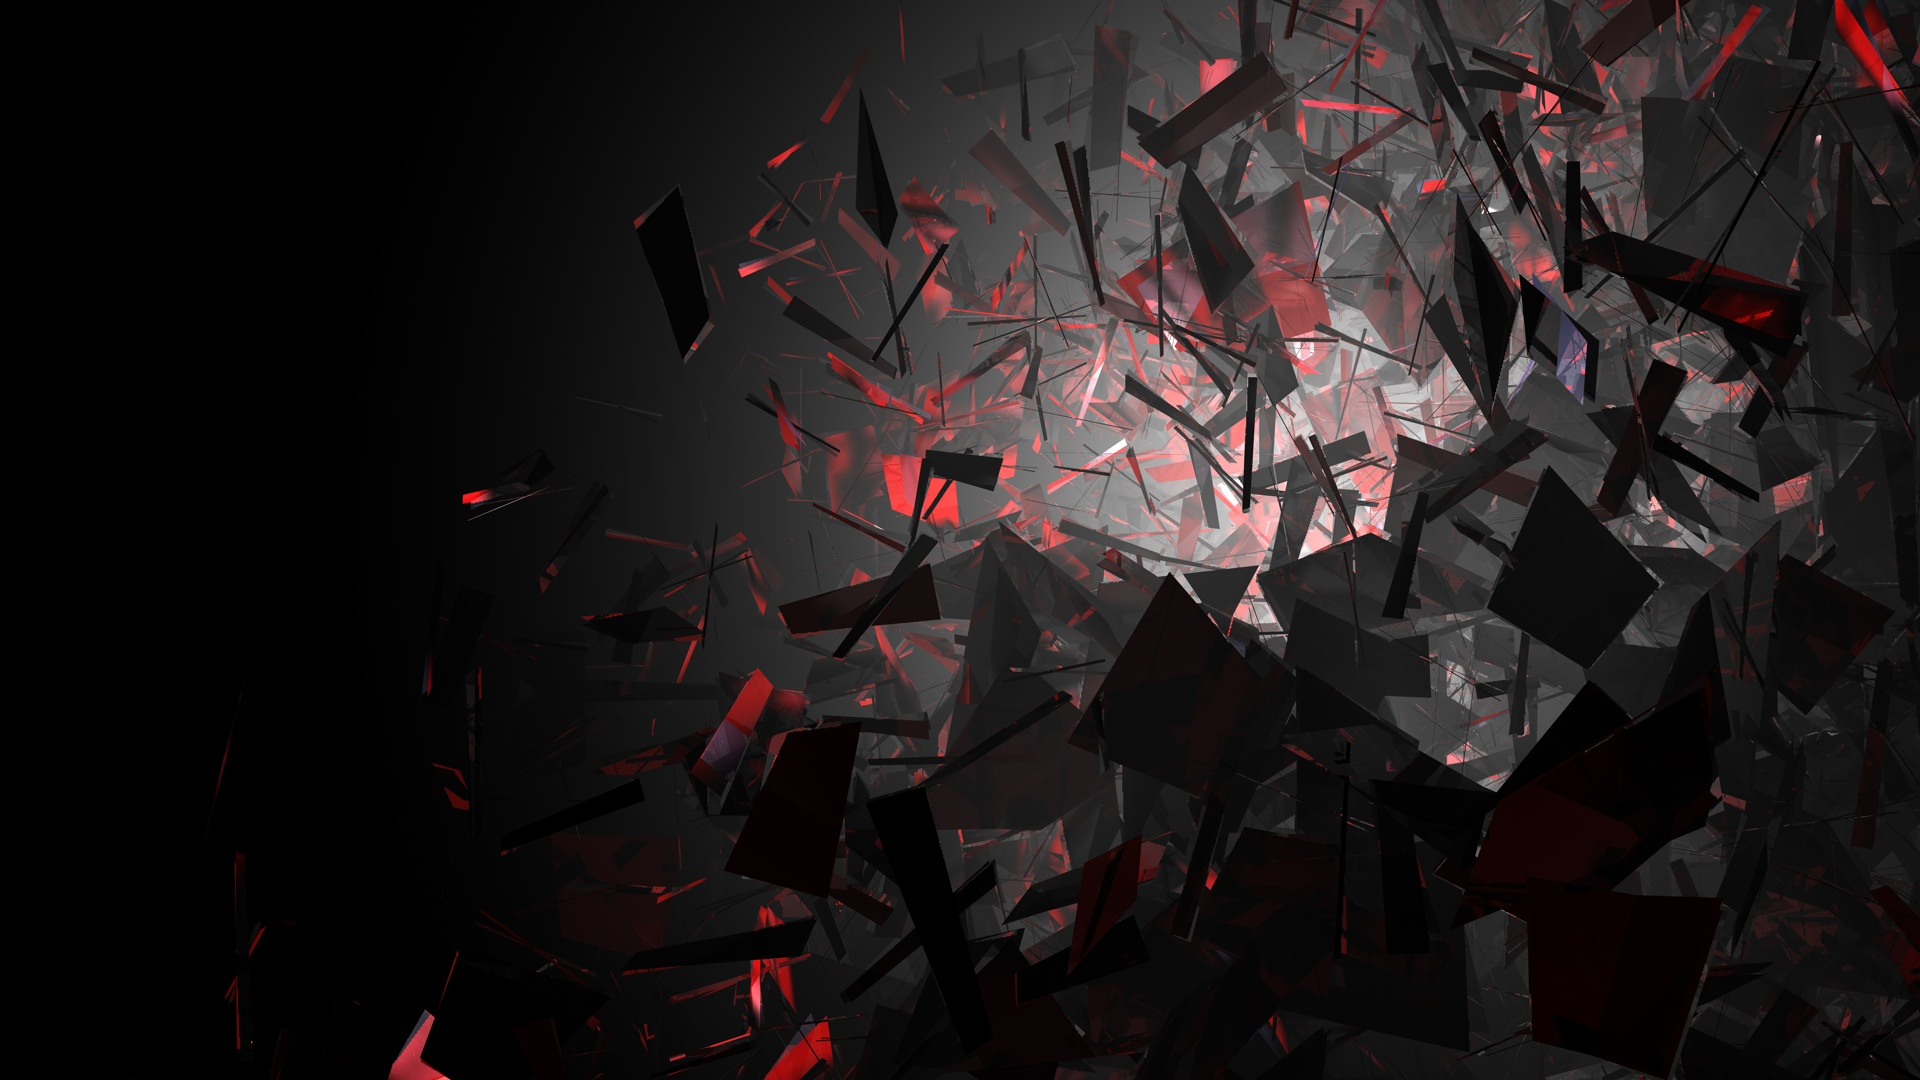 Dark Abstract Wallpapers Android Apps On Google Play 1920x1080